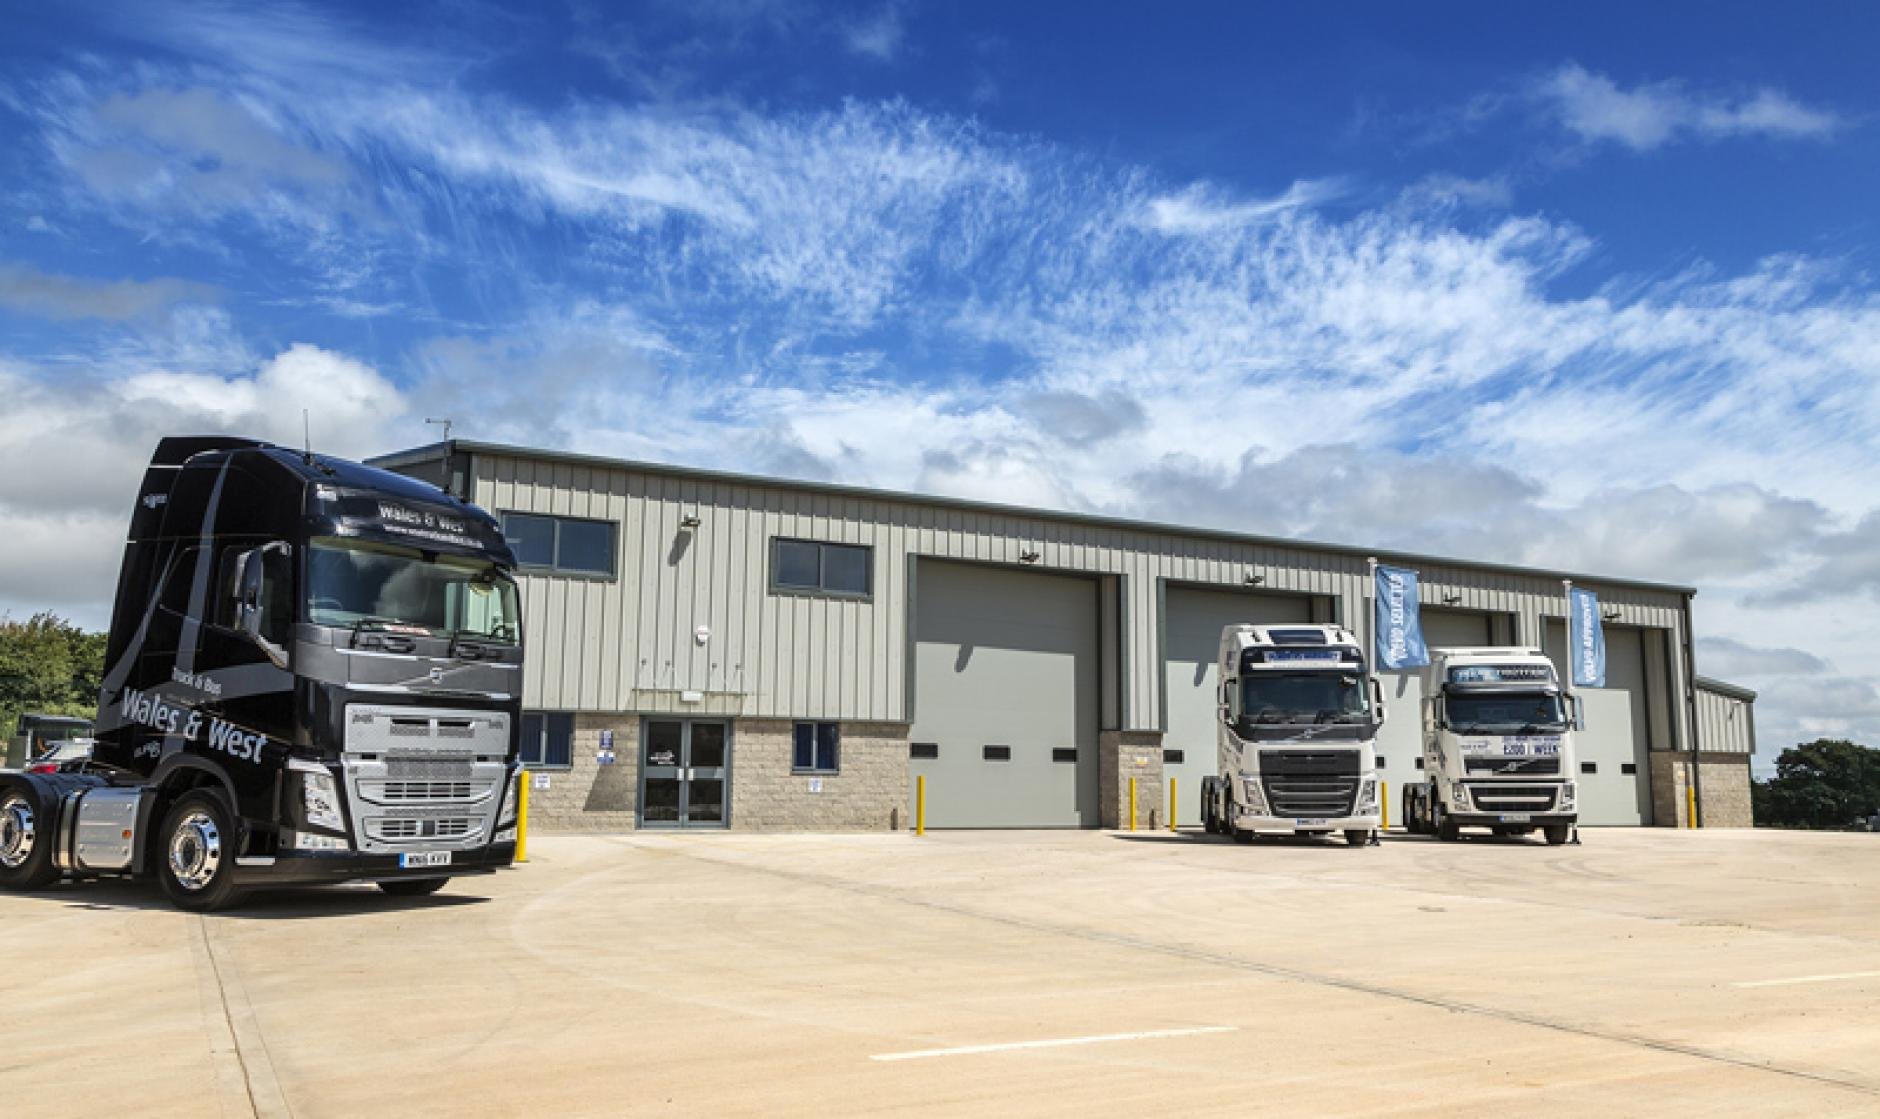 Truck And Bus Wales And West Opens Shepton Mallet Branch Commercial Motor